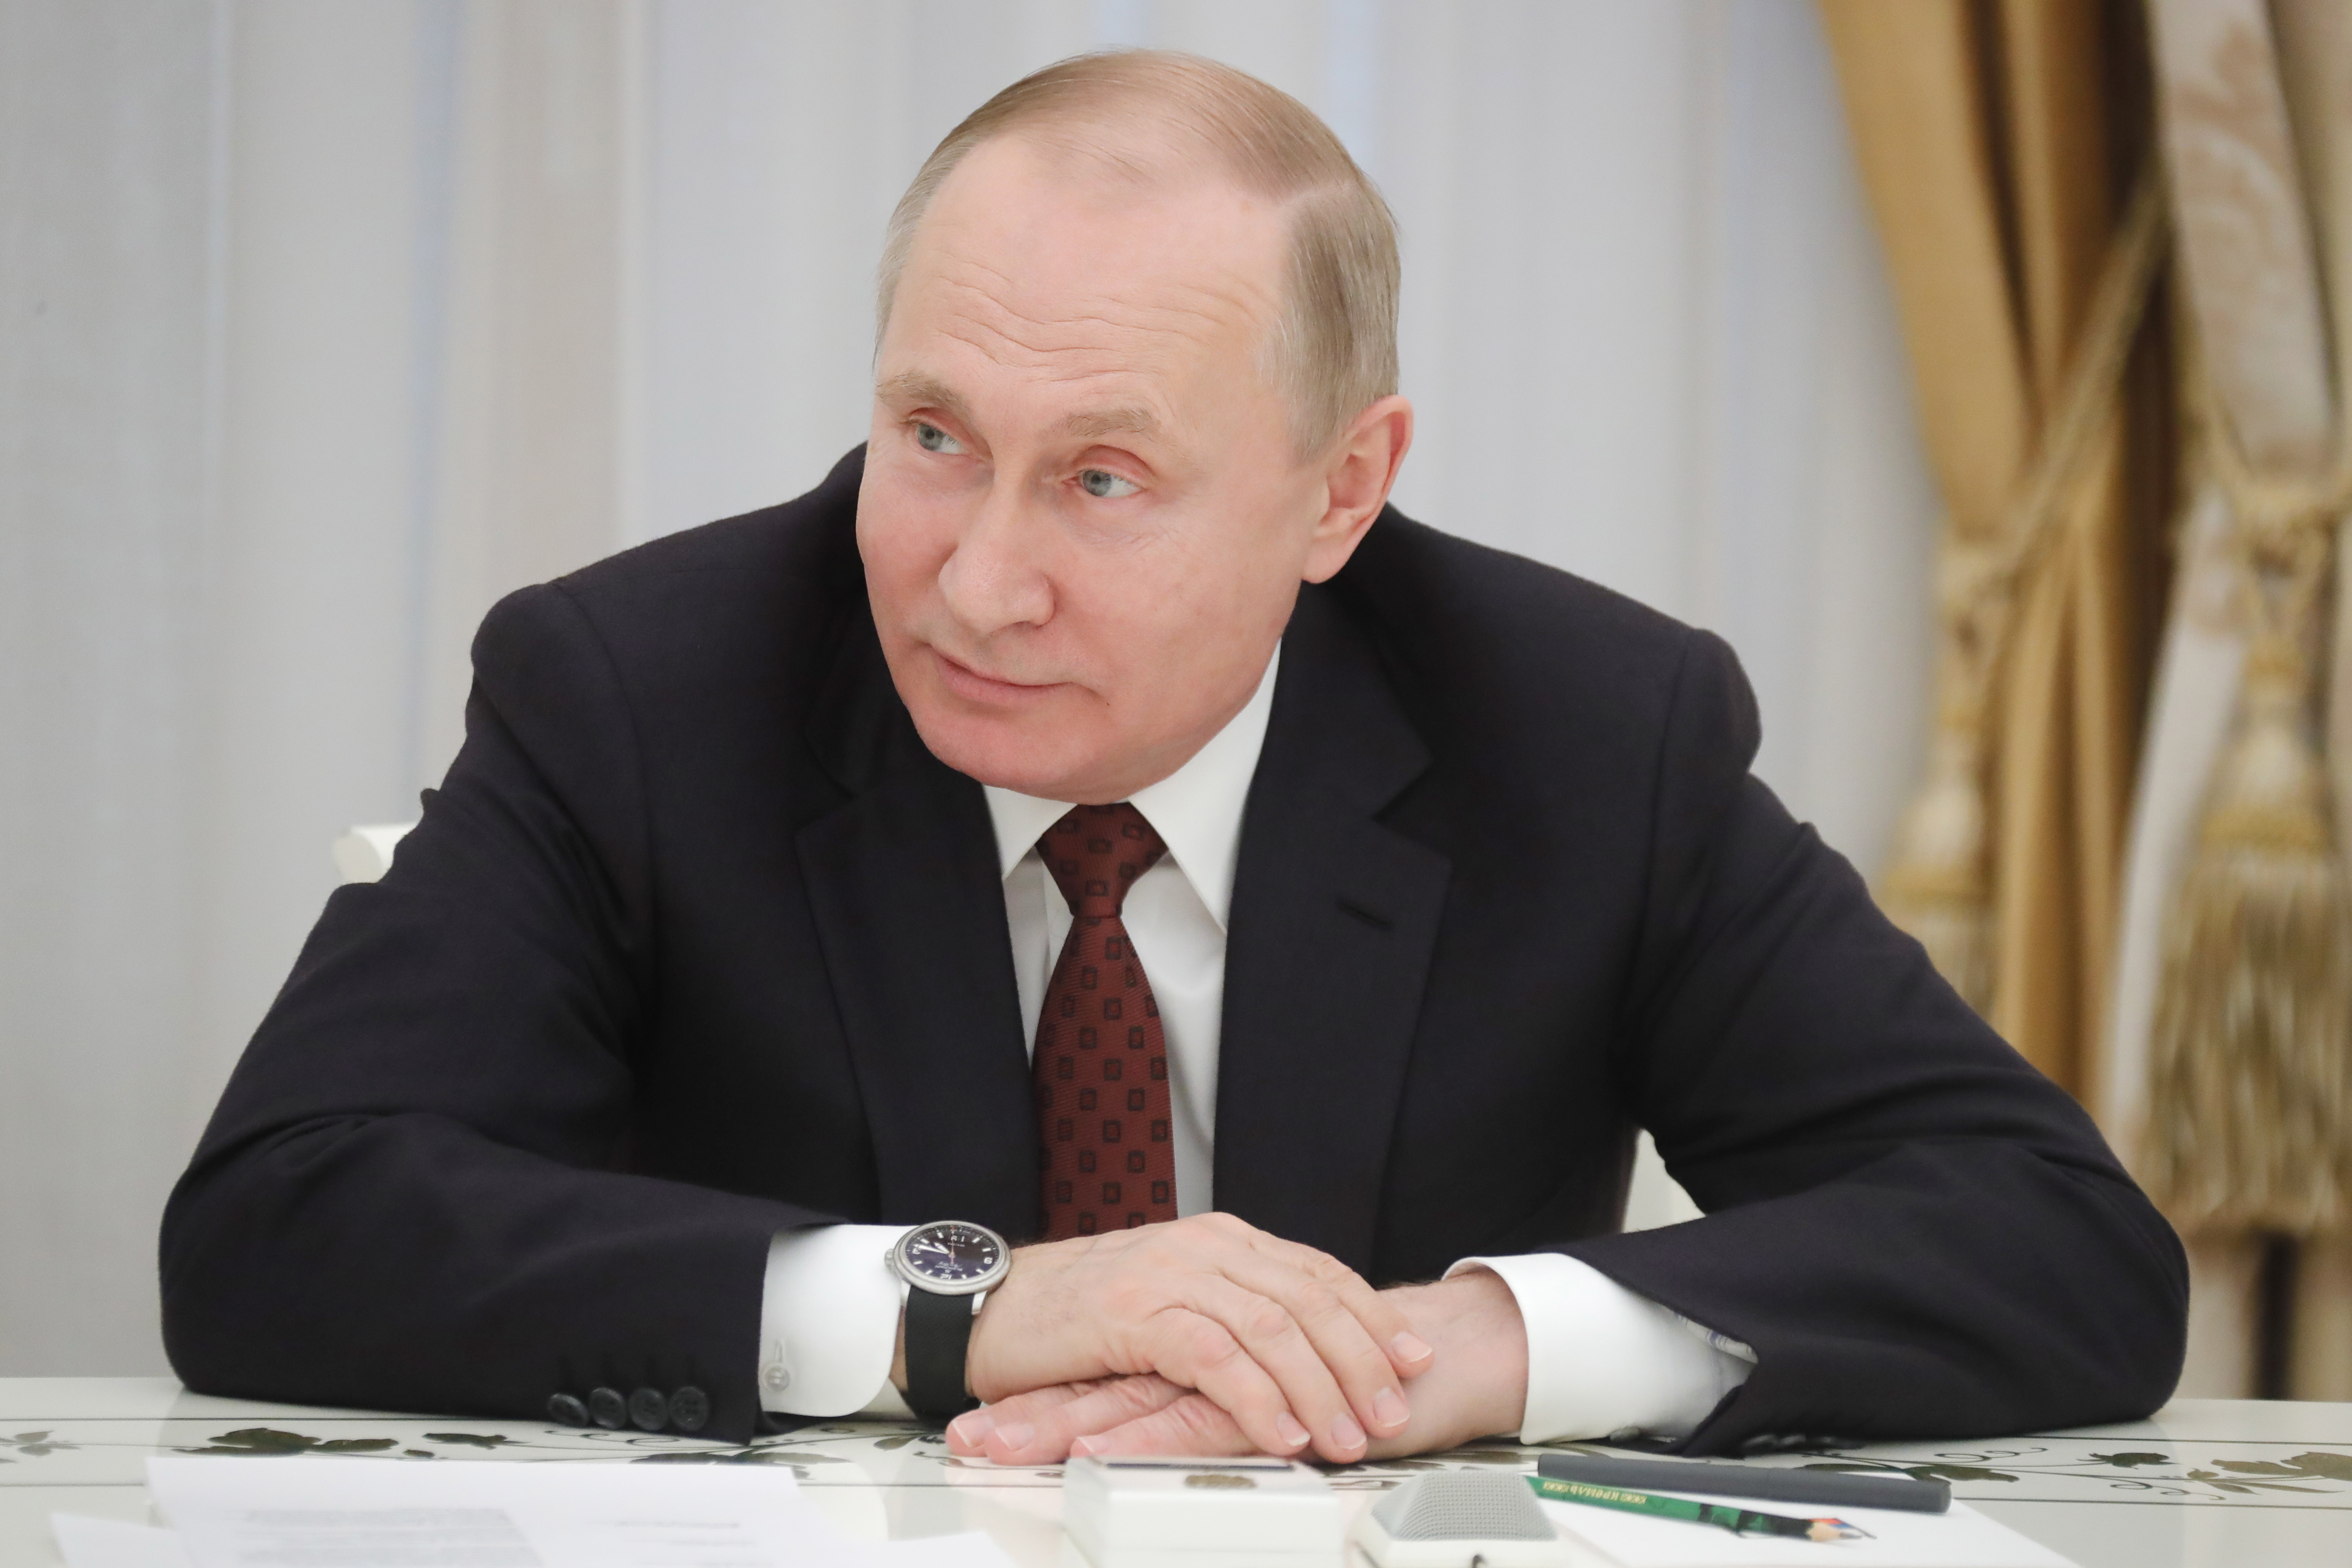 Russia's President Vladimir Putin meets with candidates in the 2018 Russian presidential election at Moscow's Kremlin.